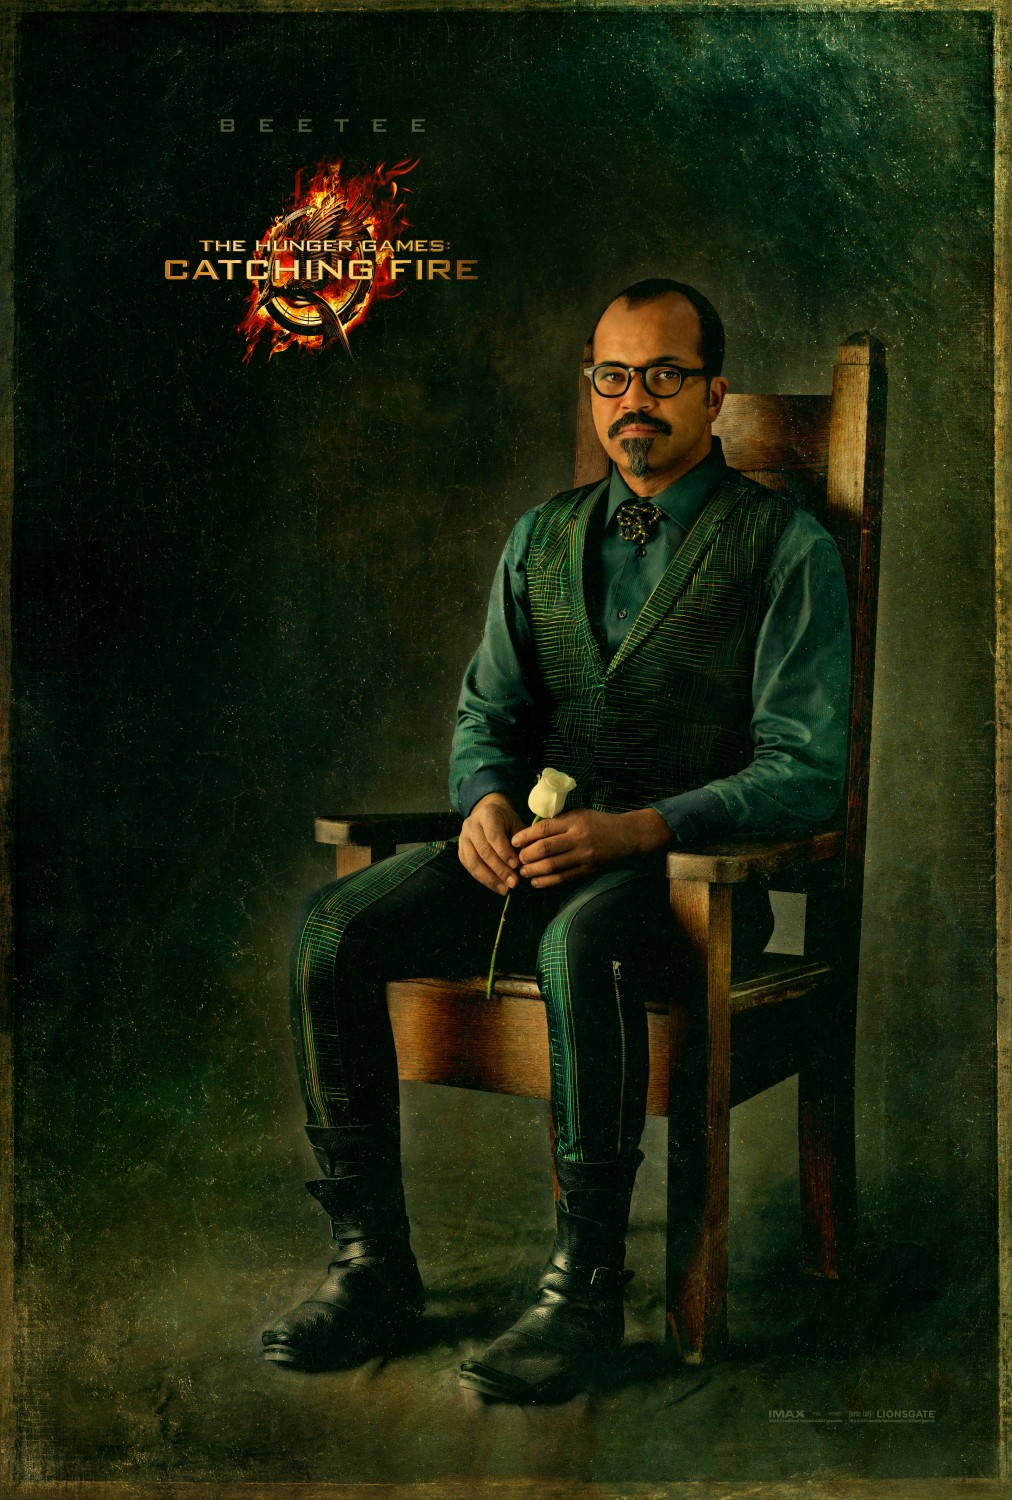 The Hunger Games Catching Fire - Poster - 009 - Beetee